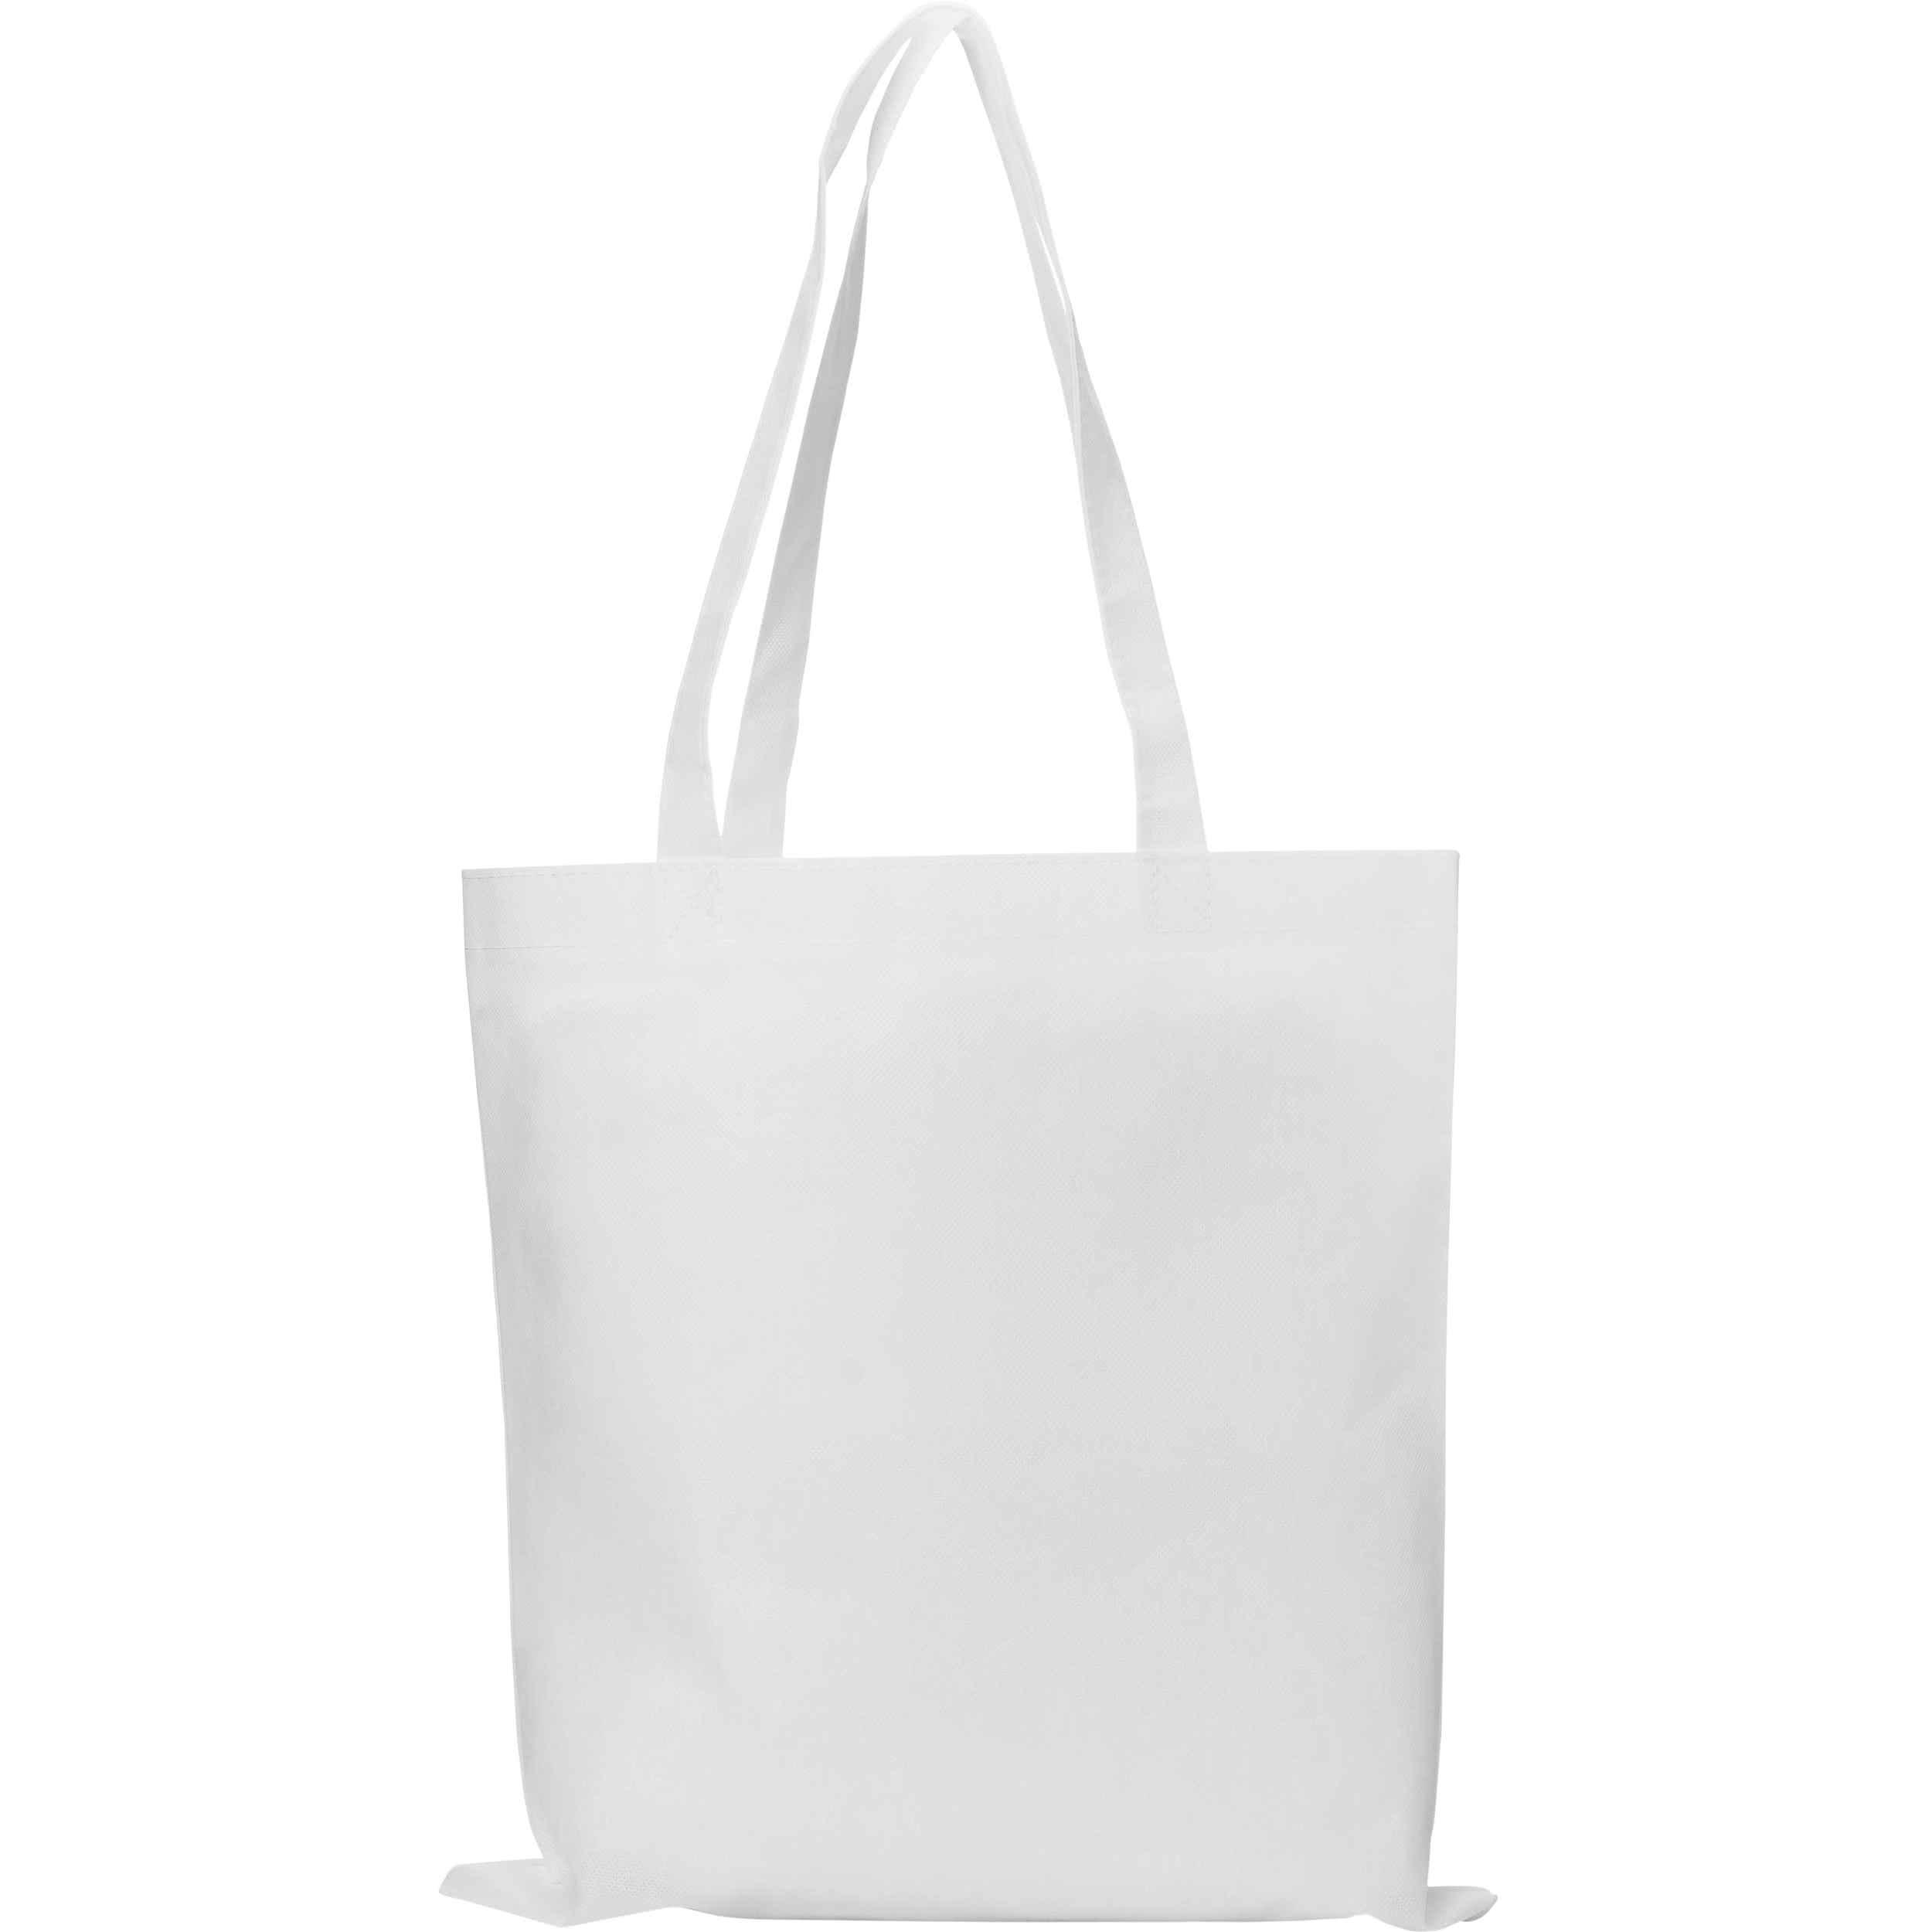 Free Reusable Tote Bag Cathedral City